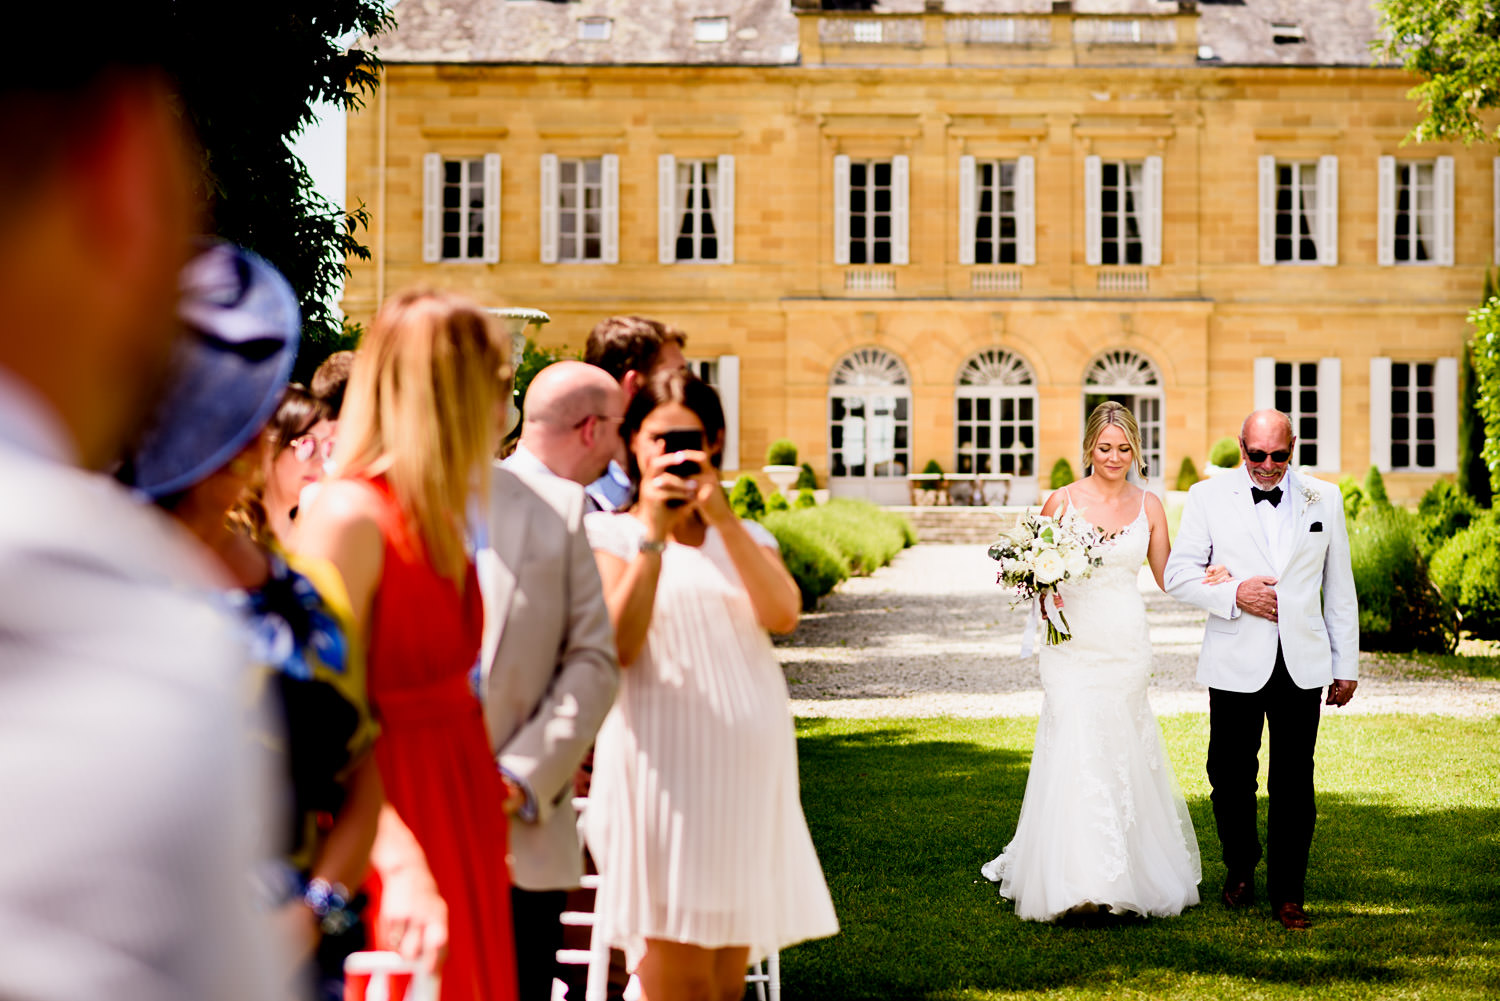 Bride walking down aisle at chateaux wedding